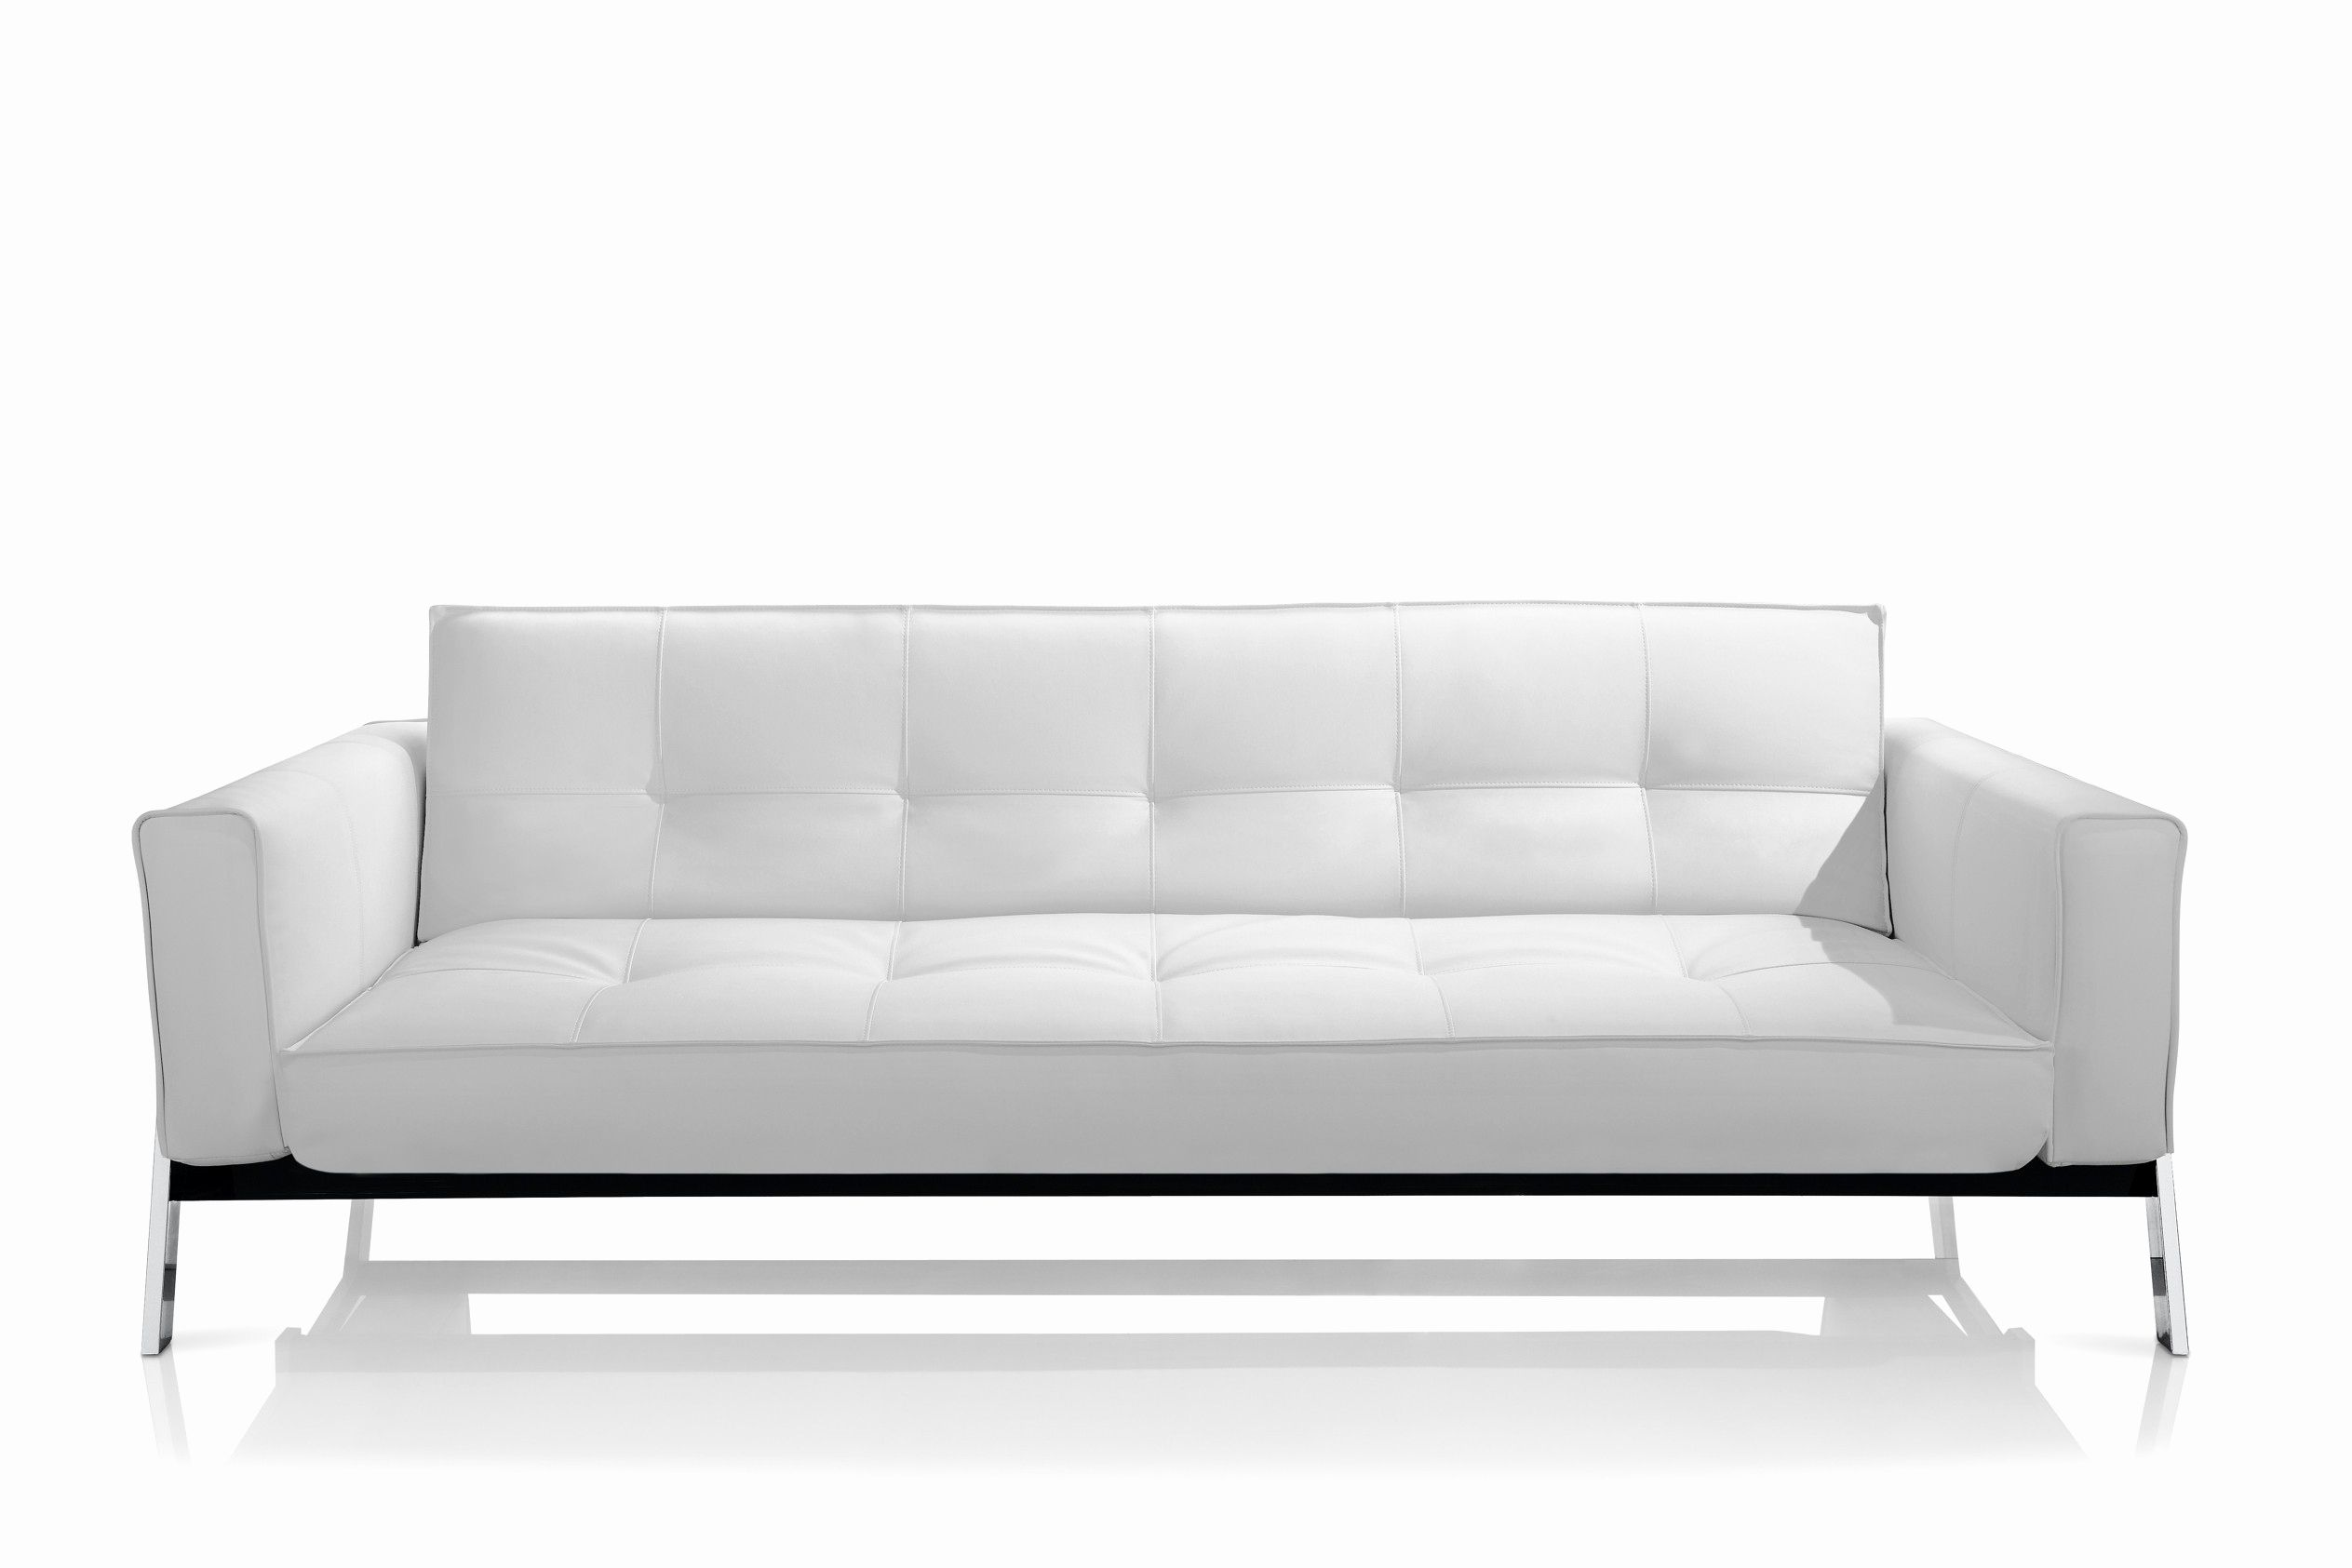 Good Leather Office Sofas Shot Perfect White Couches 36 About Remodel Office Sofa Ideas With Modern Sofa Bed Modern White Sofa White Leather Sofas